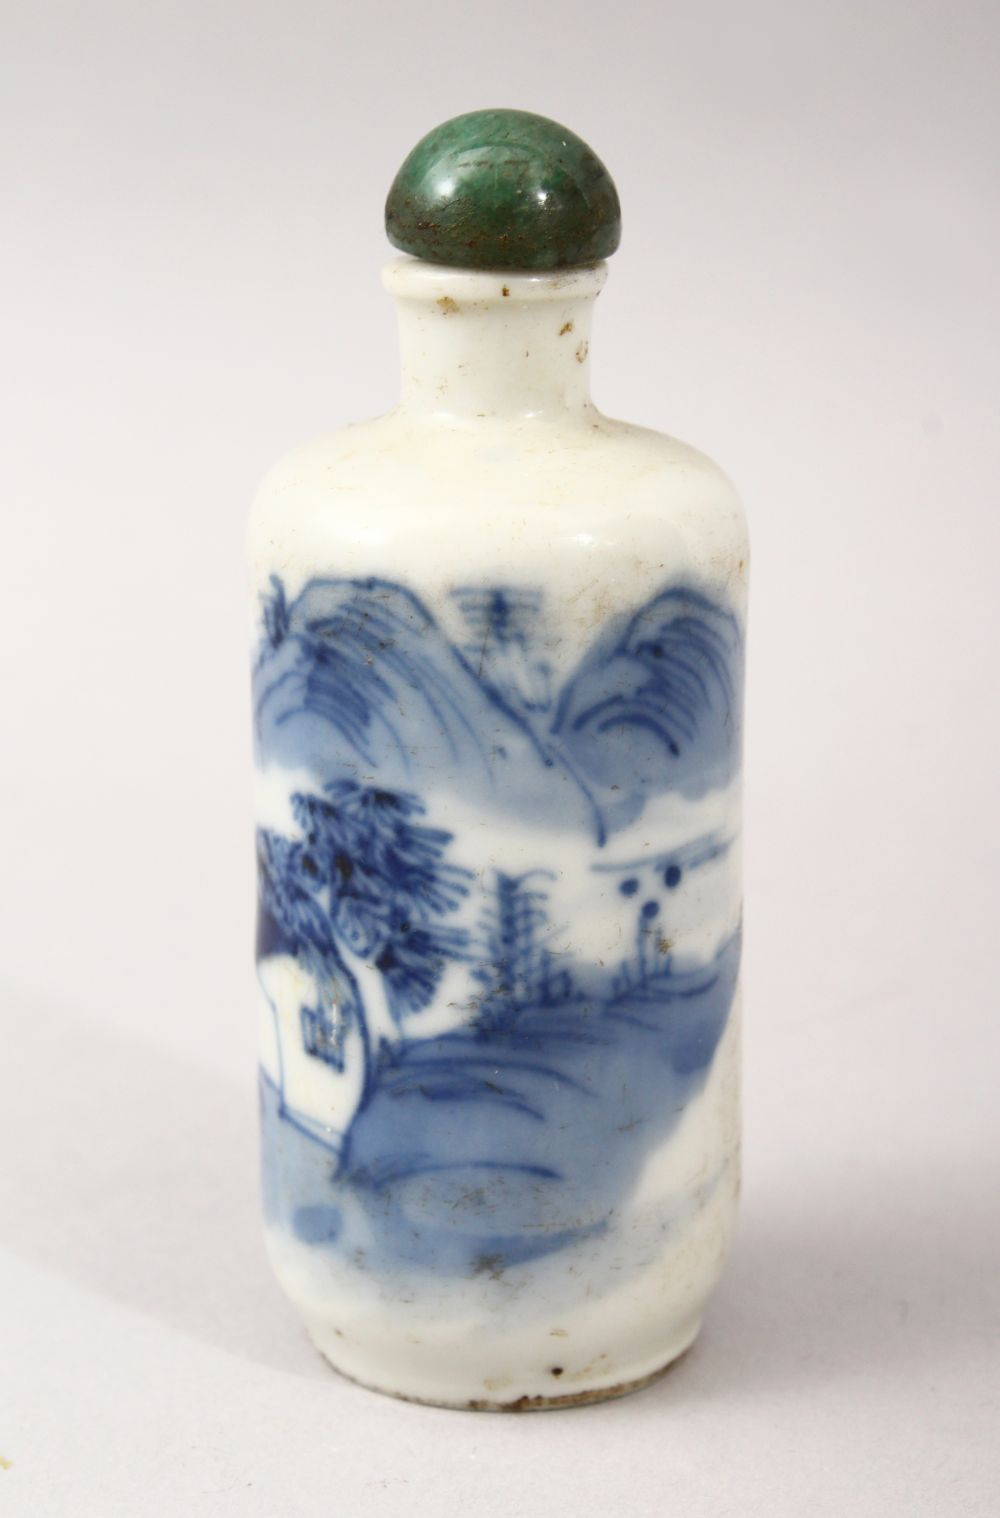 A GOOD 19TH CENTURY CHINESE BLUE & WHITE PORCELAIN SNUFF BOTTLE, Adecorated with scenes of